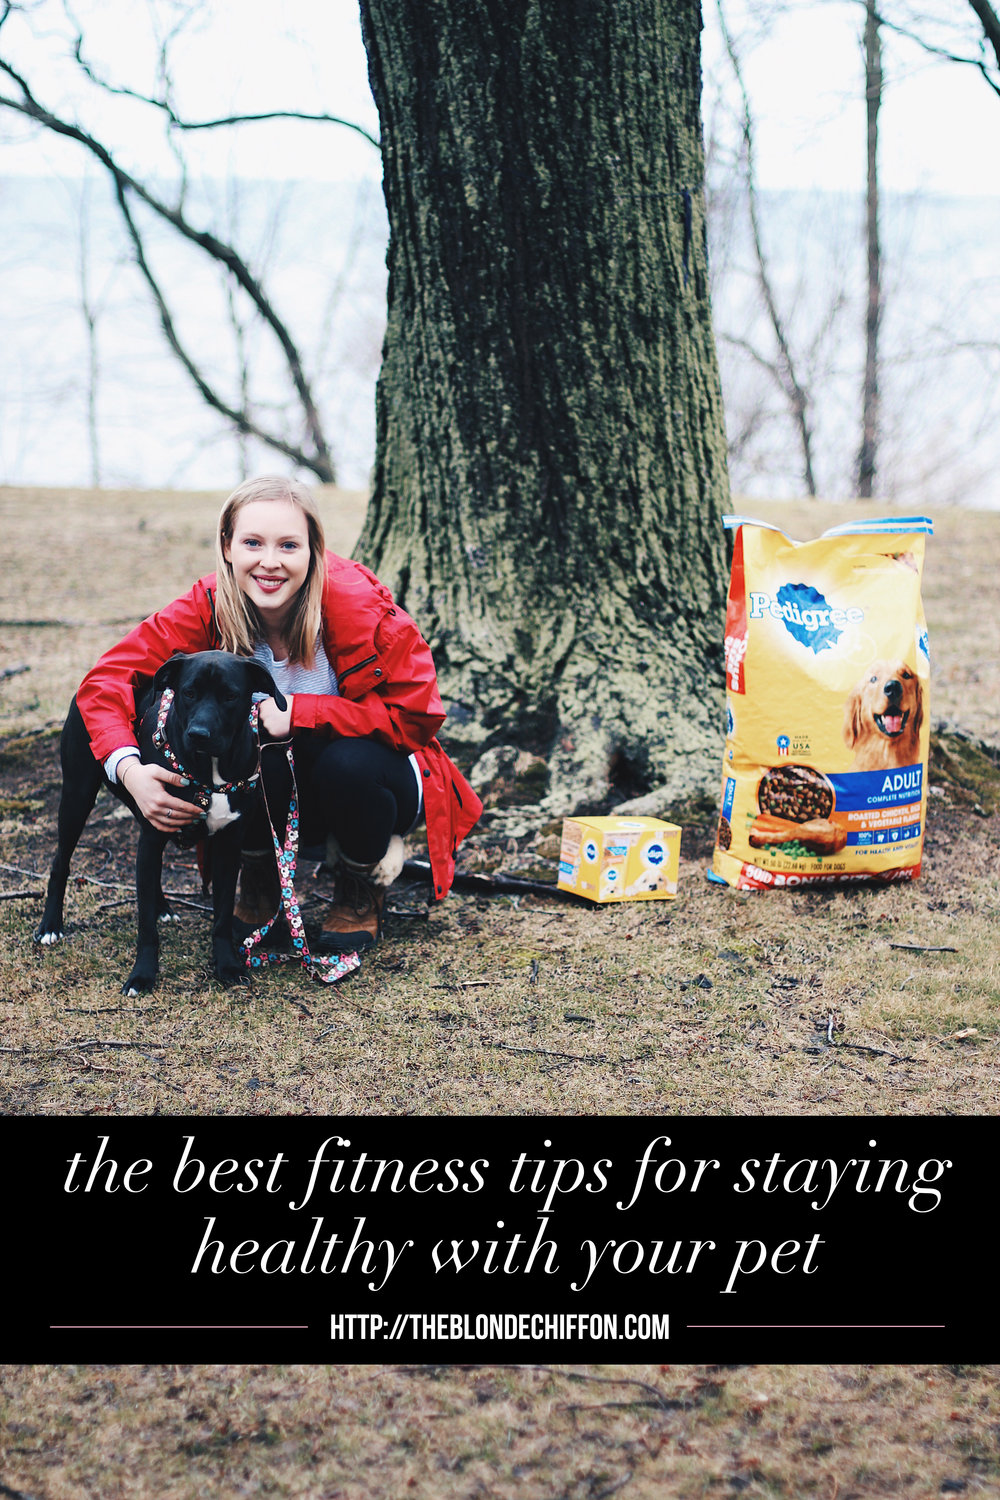 The Best Fitness Tips for Staying Healthy With Your Pet